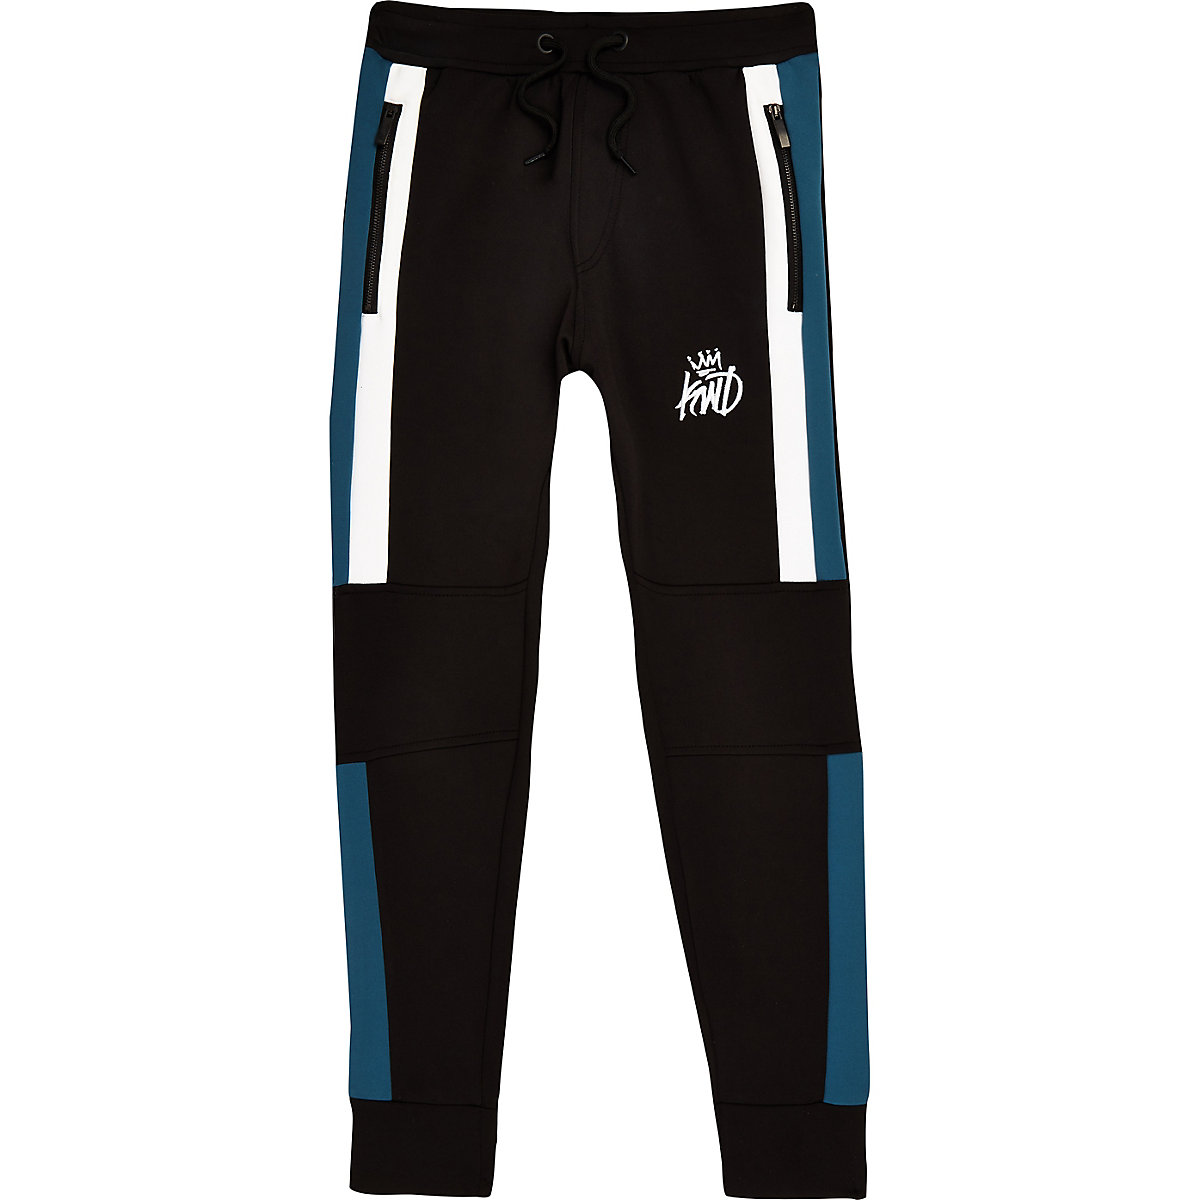 Zwarte Joggingbroek Jongens.Boys Black Kings Will Dream Joggers